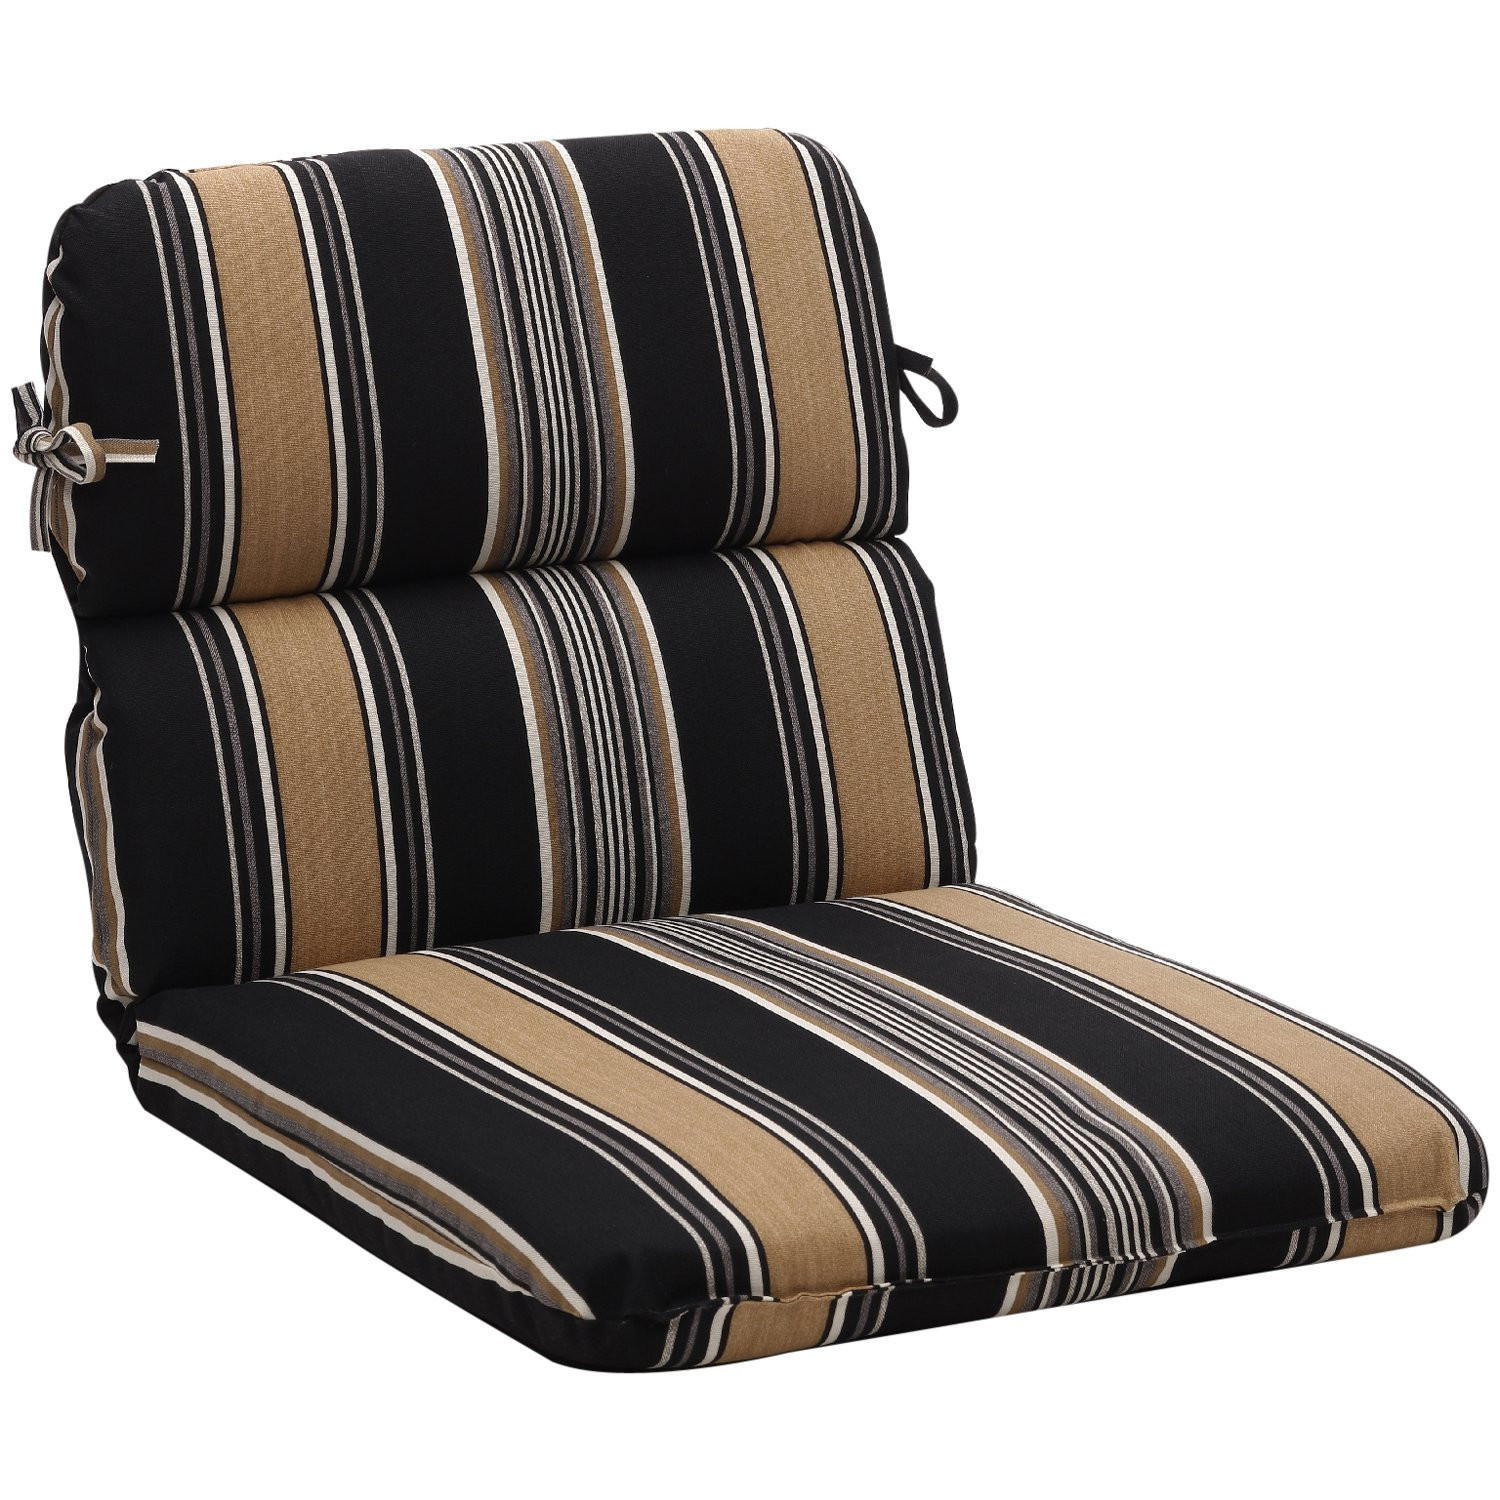 Best ideas about Outdoor Patio Chair Cushions . Save or Pin Rounded Black Tan Stripe Outdoor Chair Cushion Free Now.